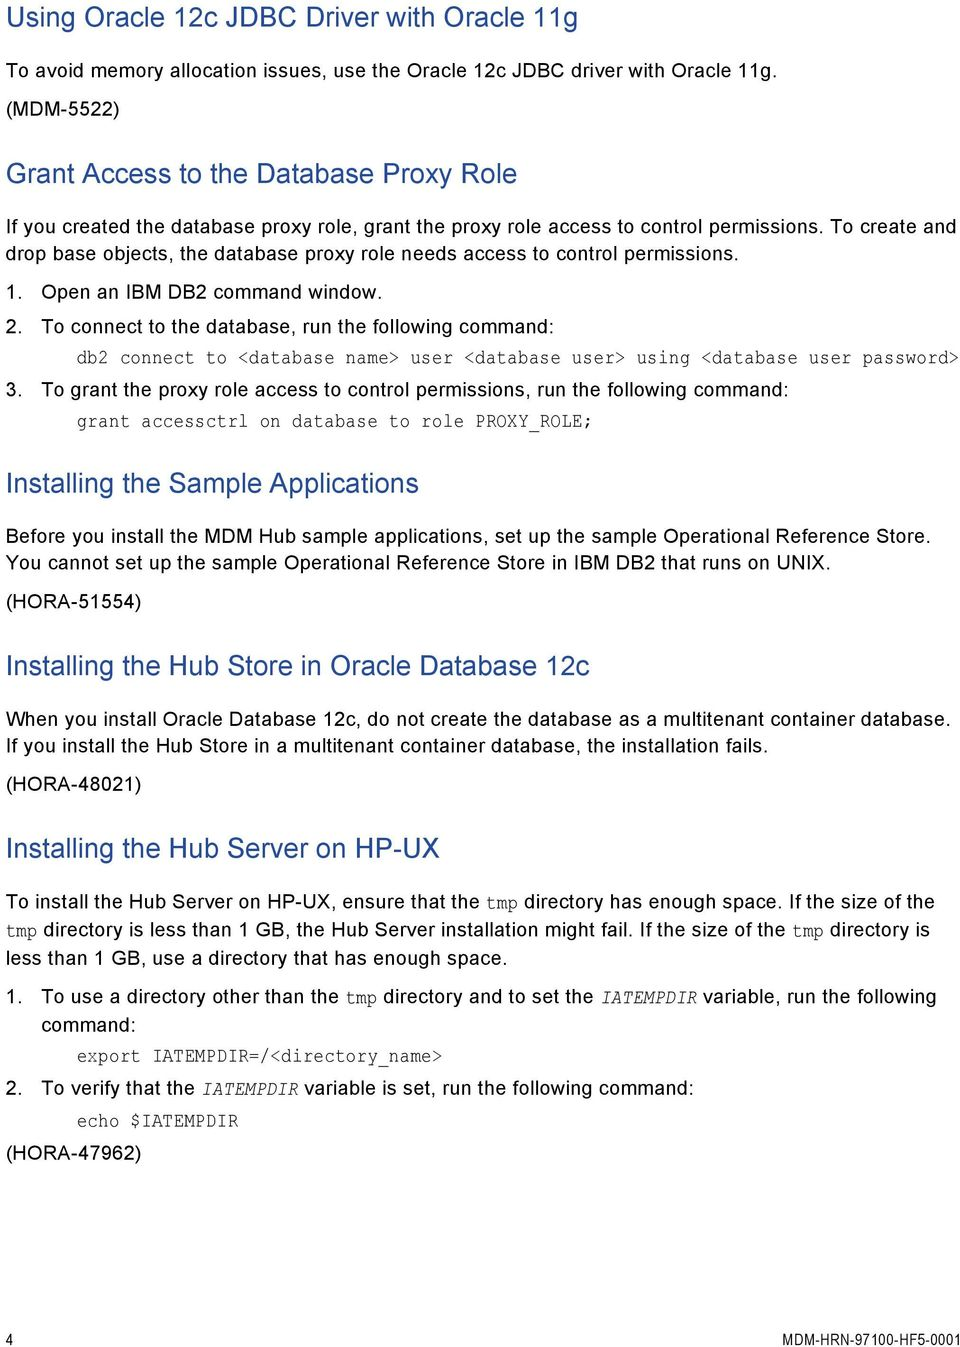 Informatica MDM Multidomain Edition Version HotFix 5 Release Notes